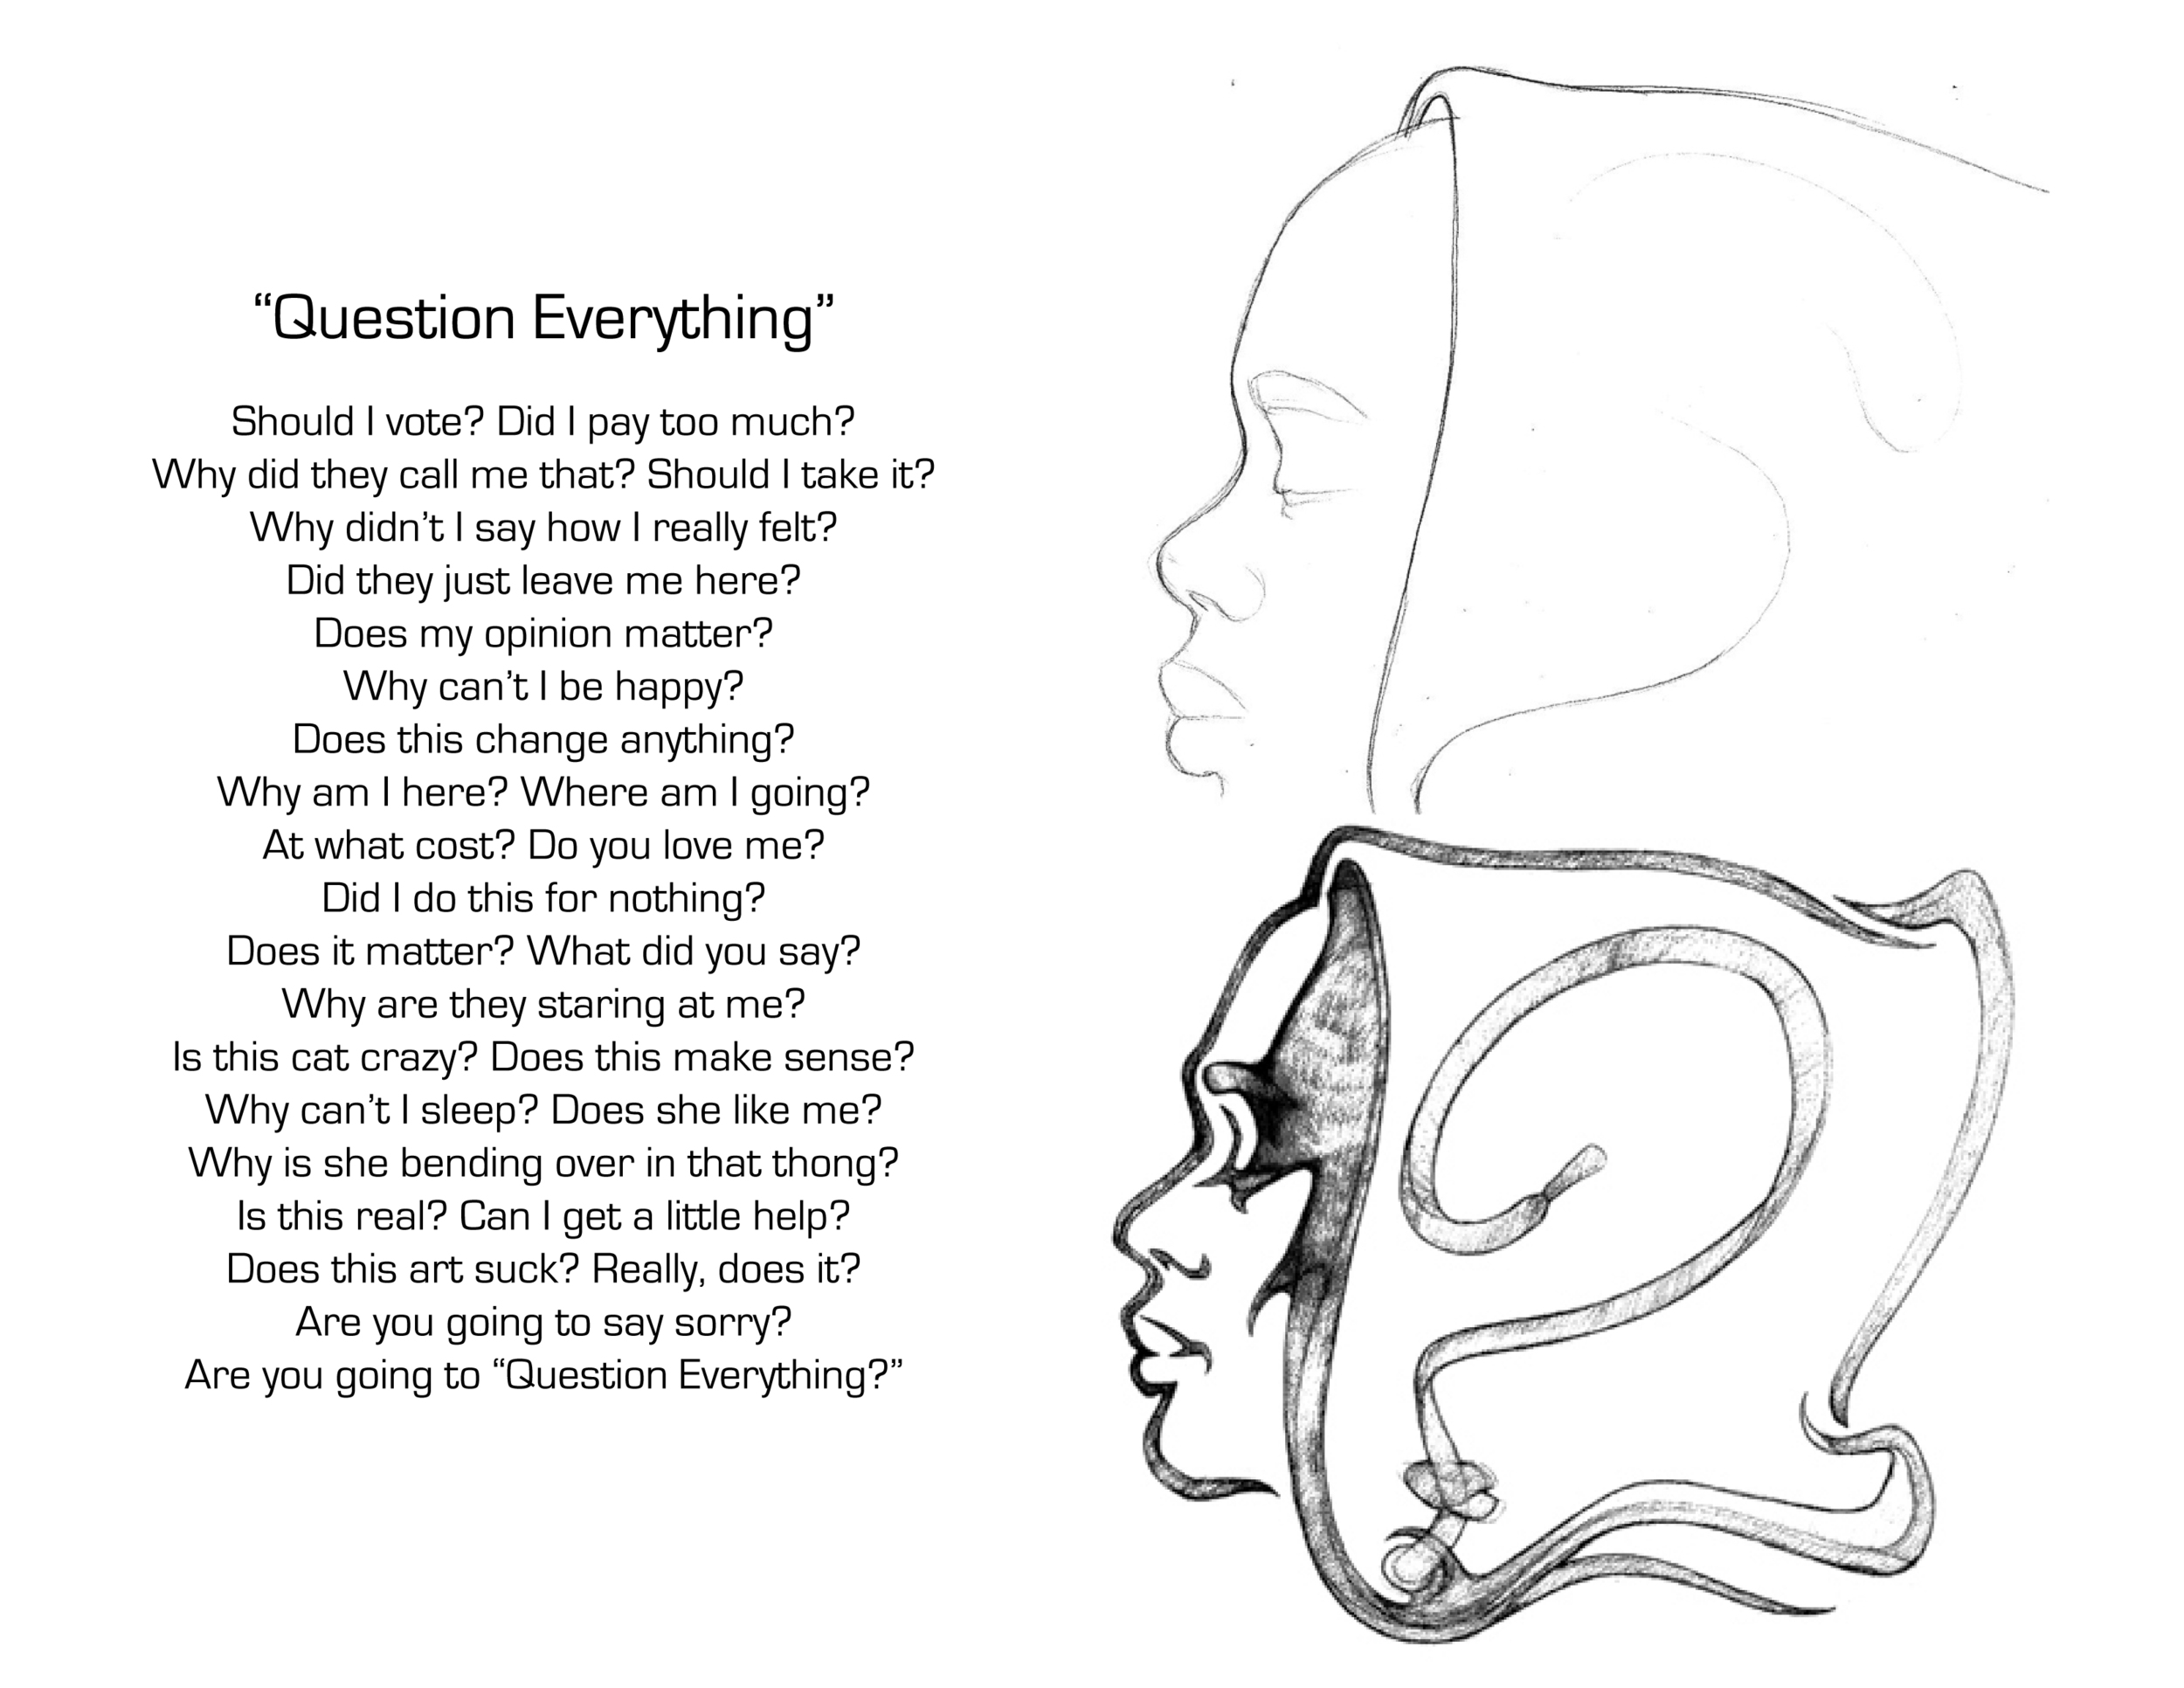 Question Everything Sketches